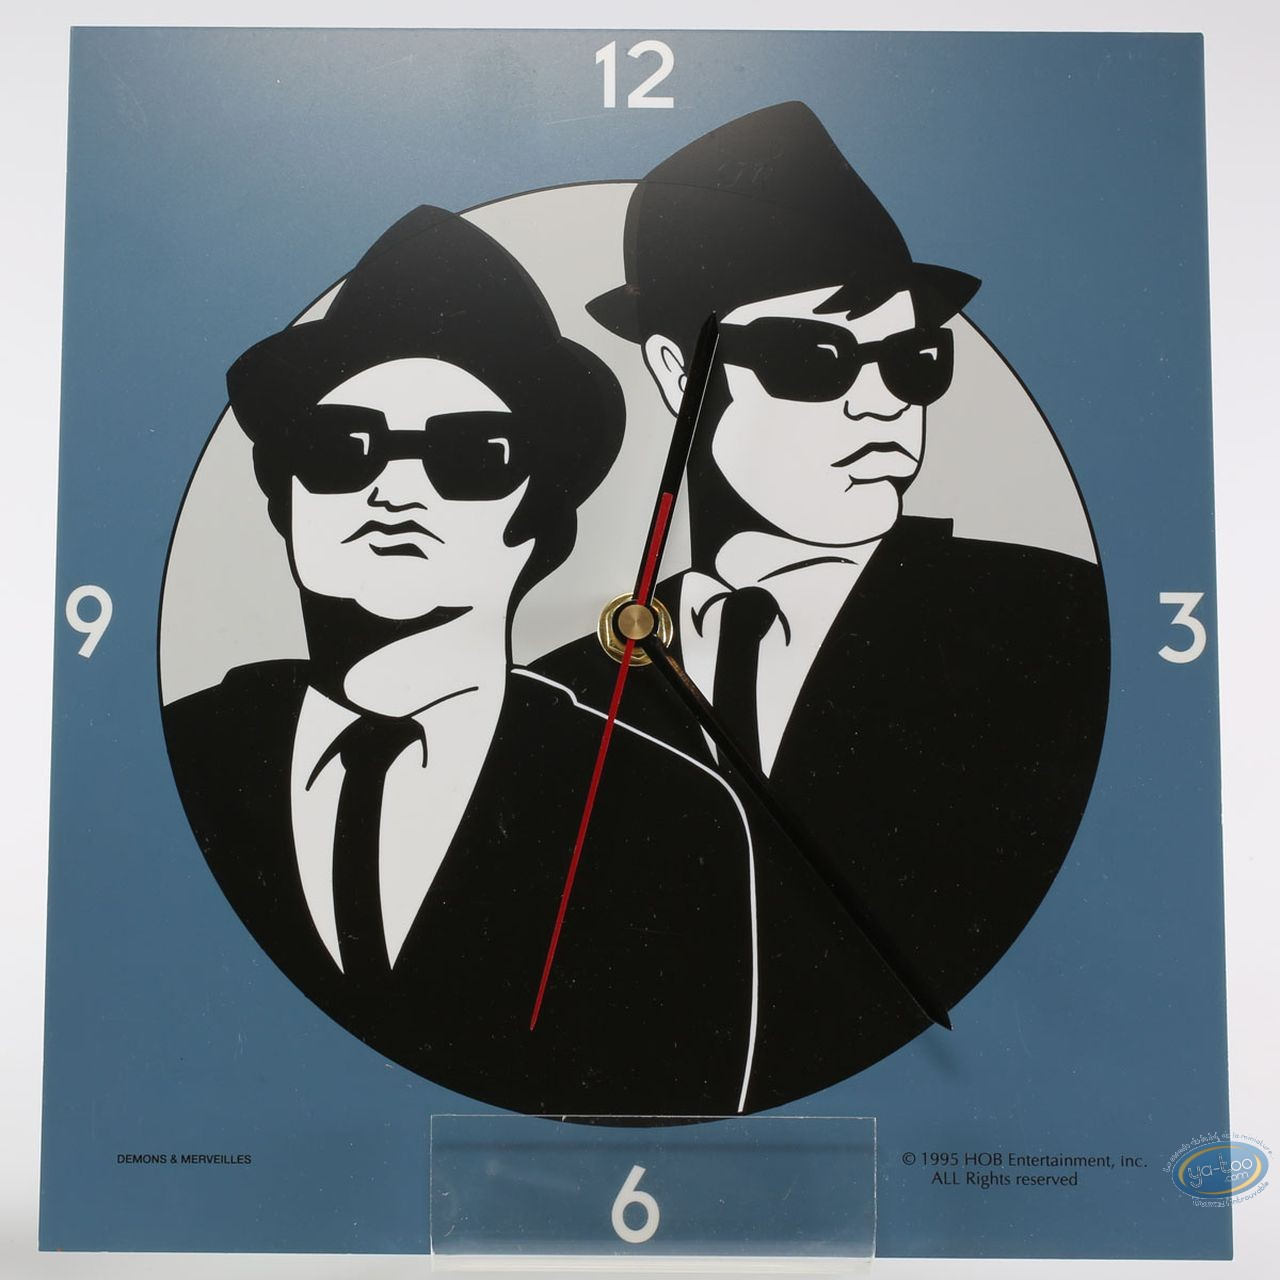 Horlogerie, Blues Brothers : Horloge, Blues Bothers